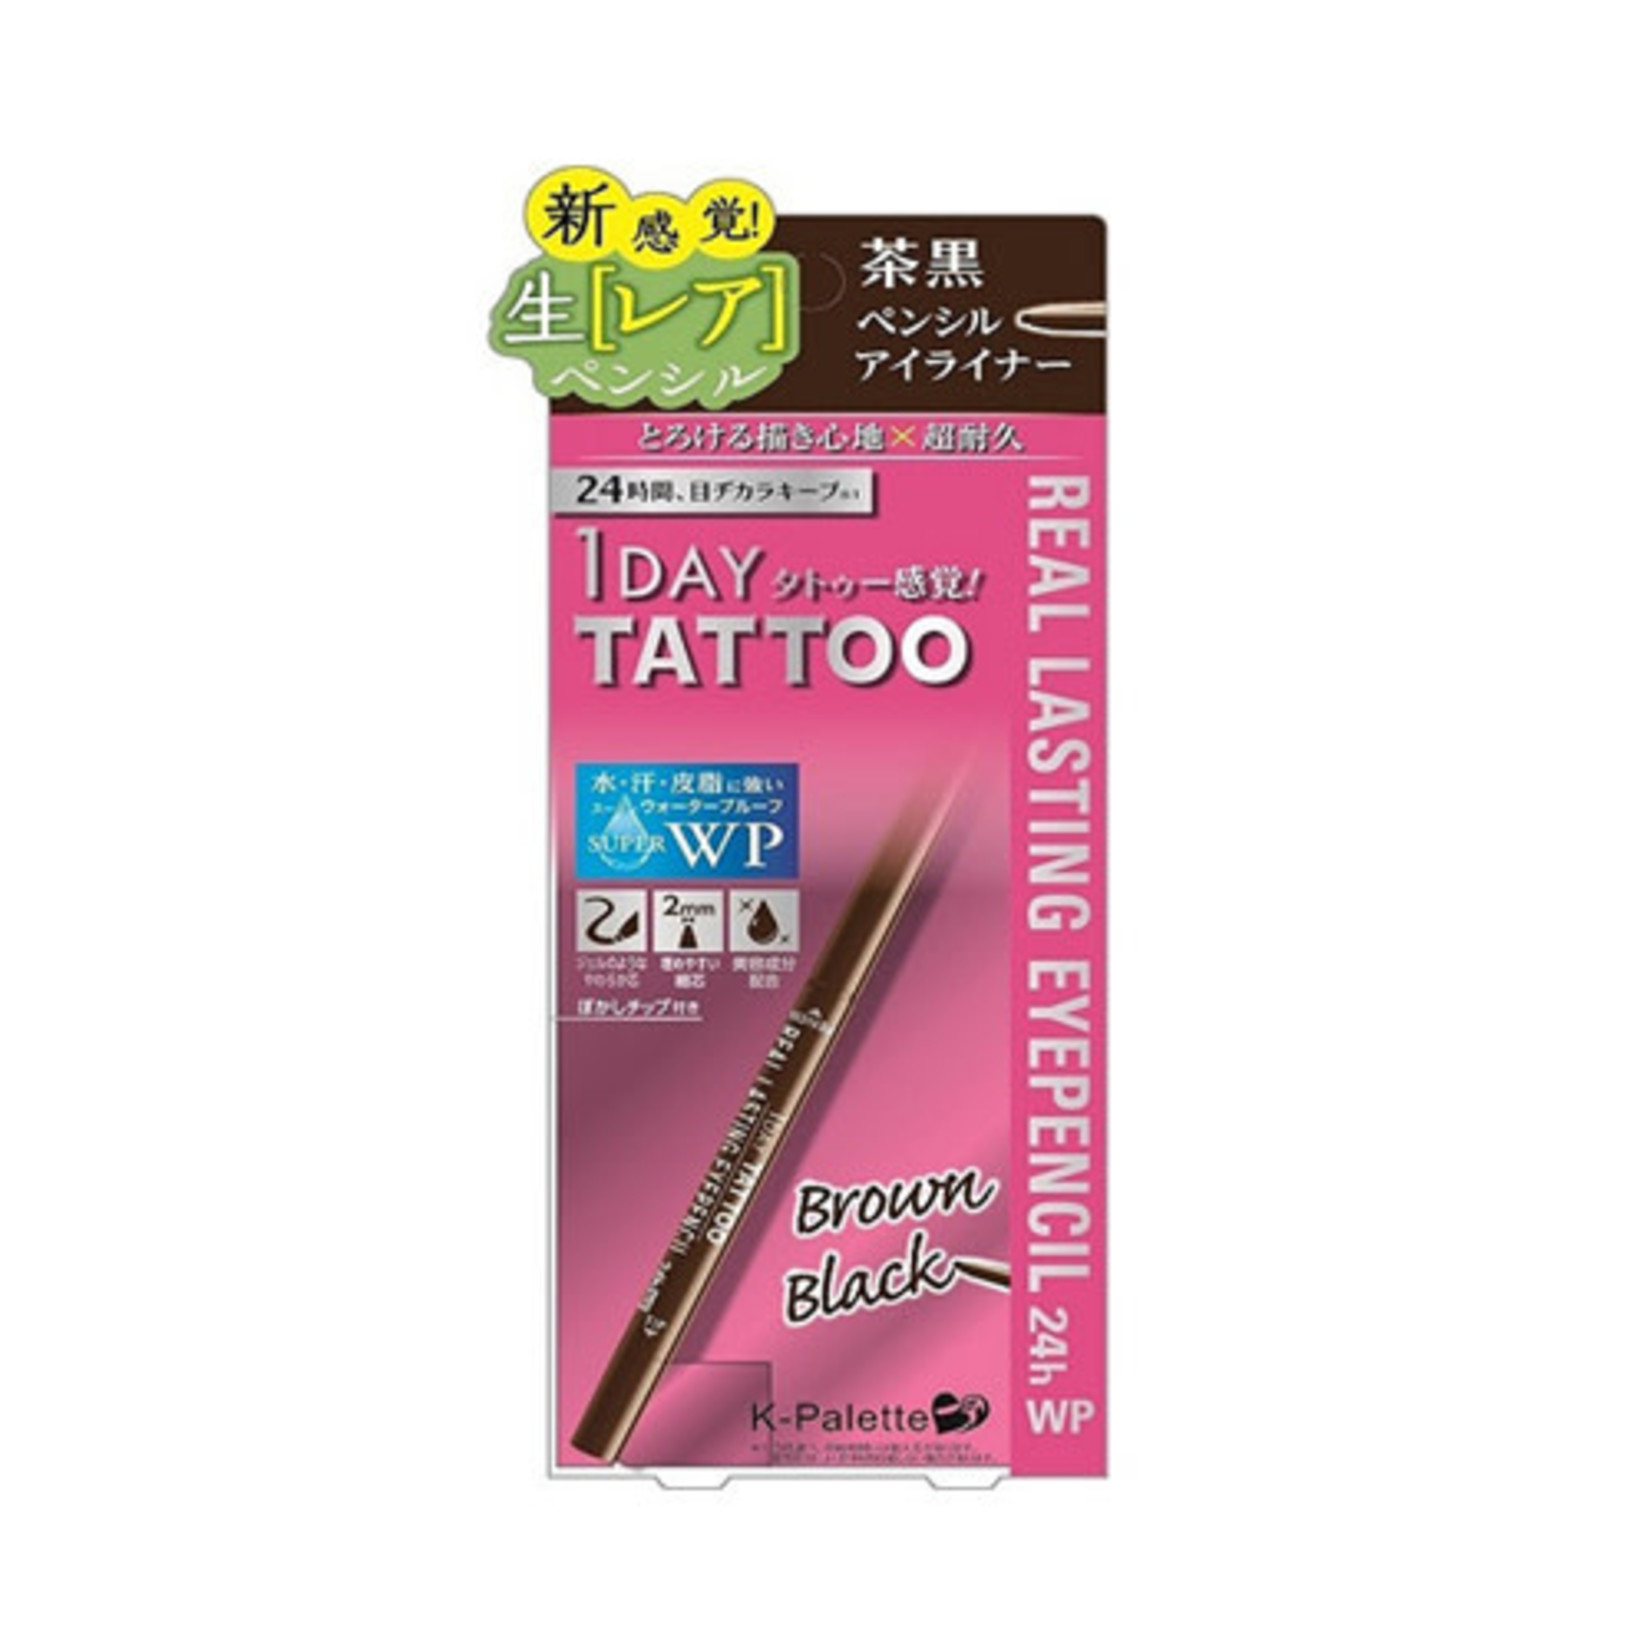 K-Palette K-Palette Real Lasting Eyepencil 24 Hours Natural Brown